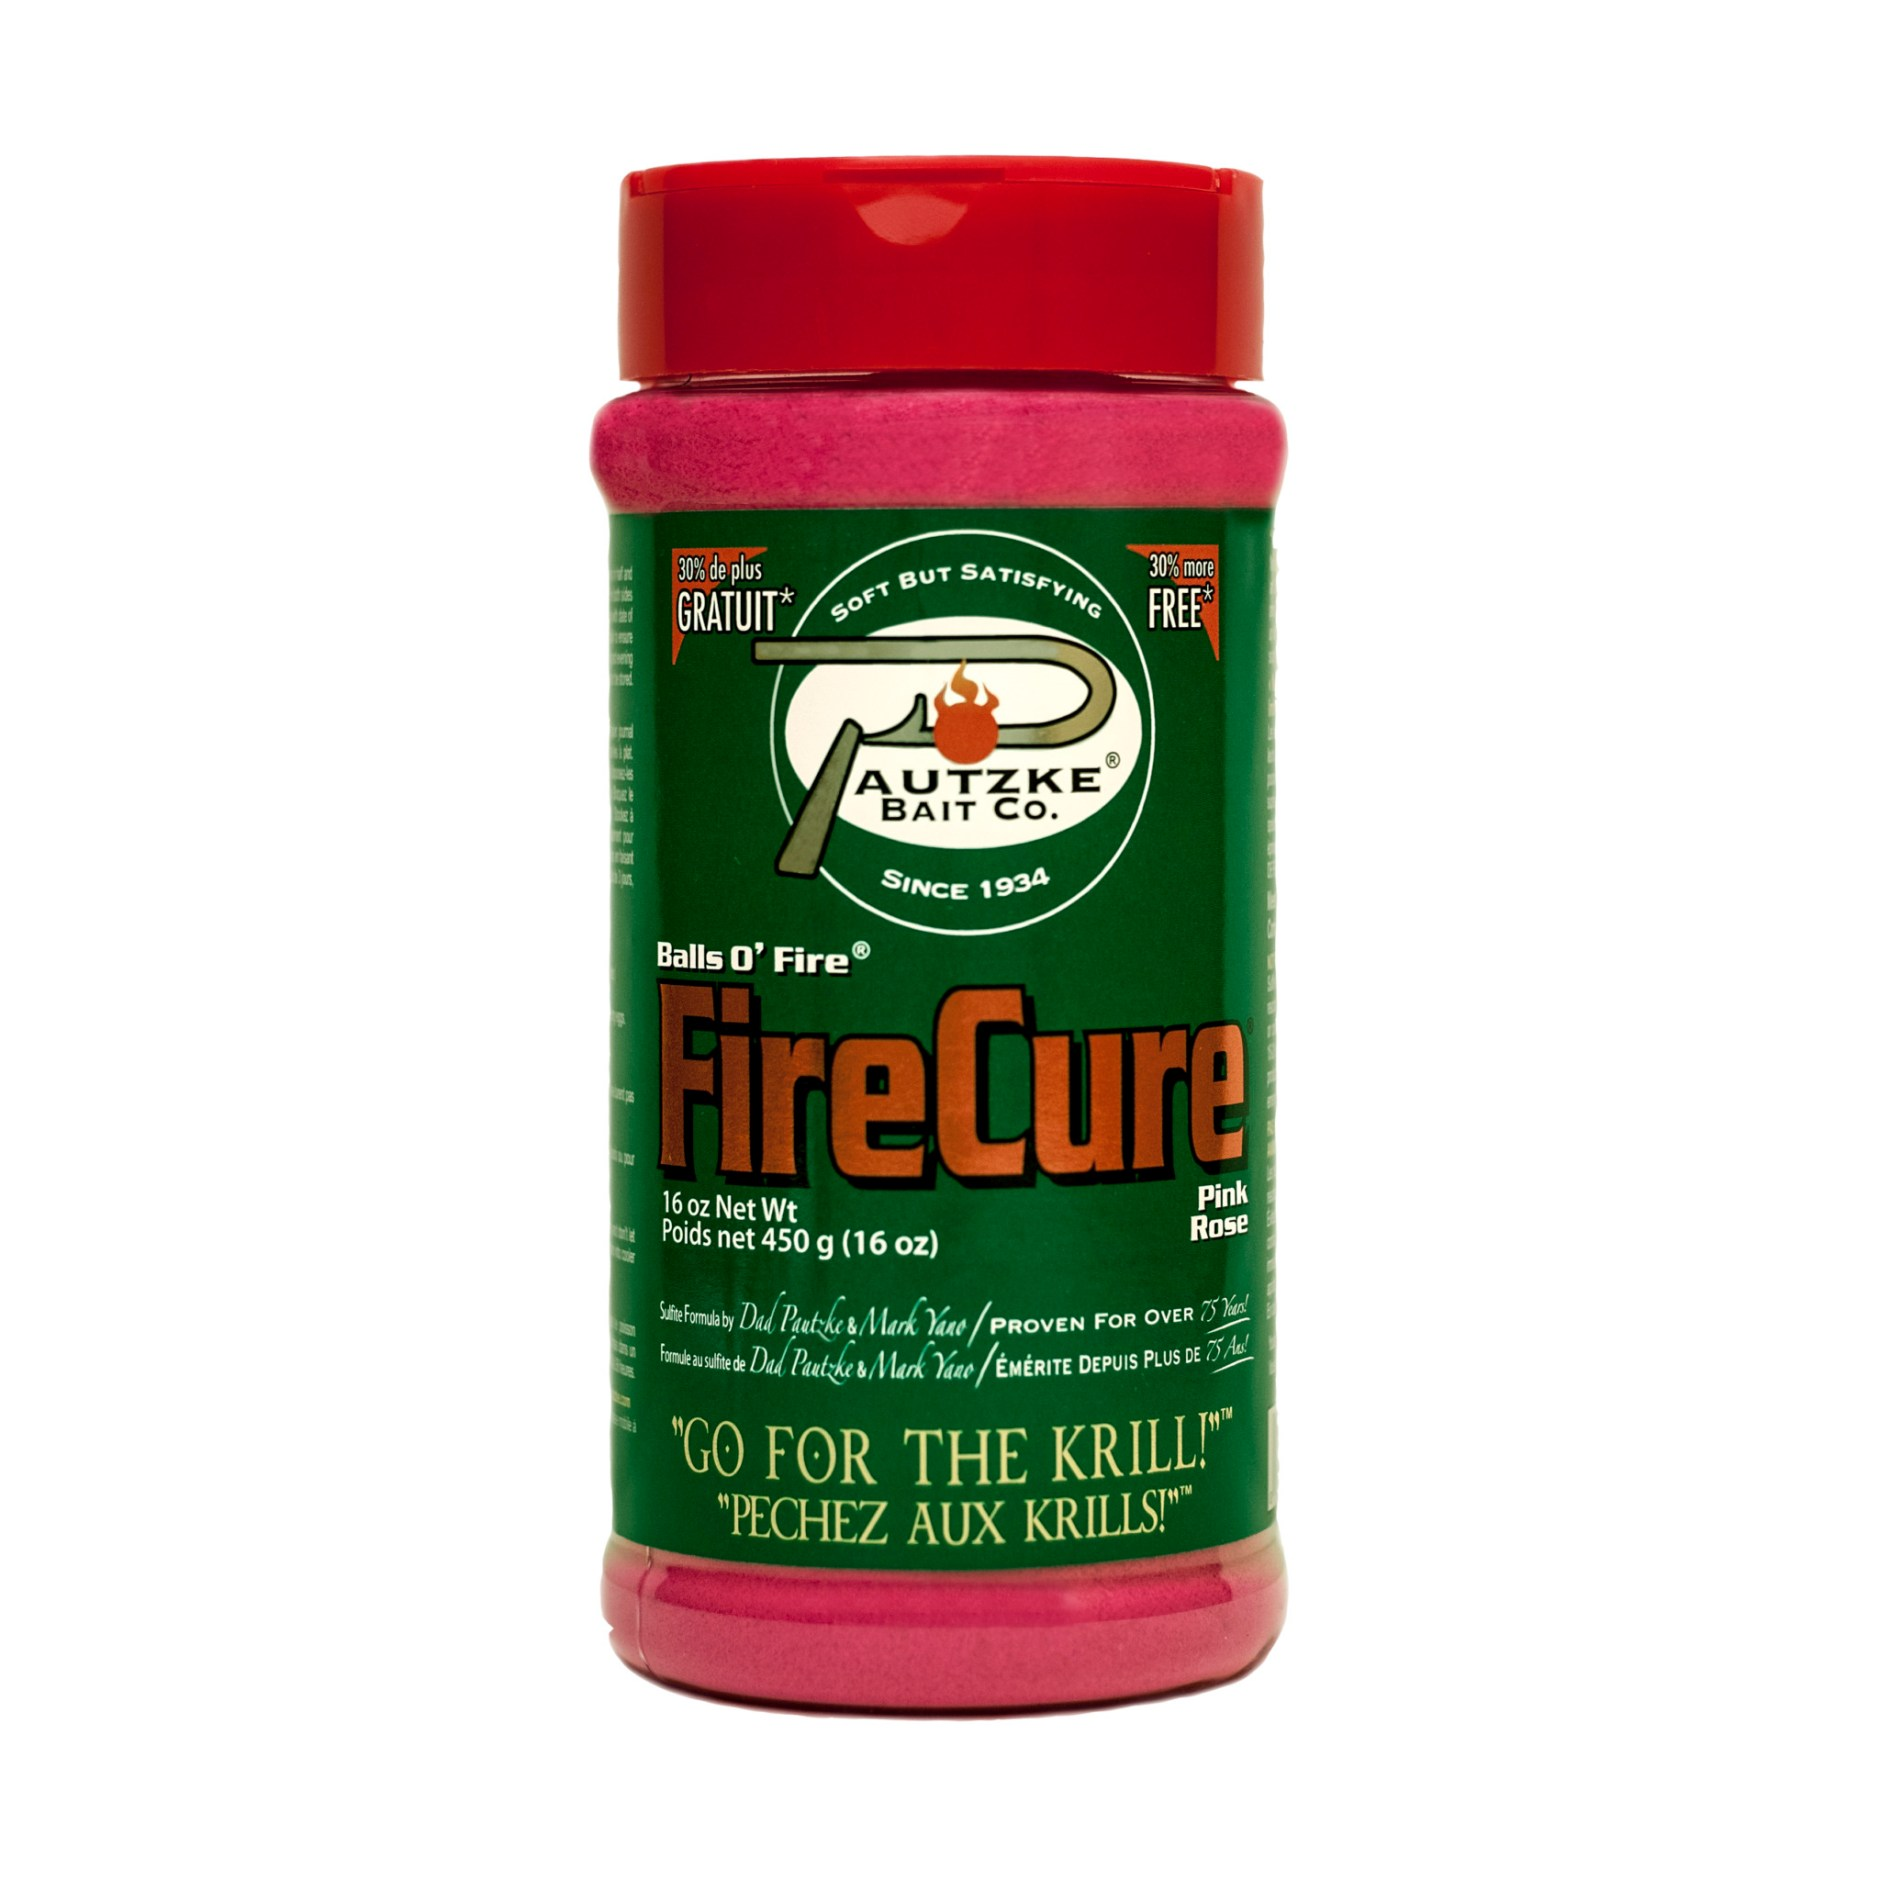 Pautzke Fire Cure